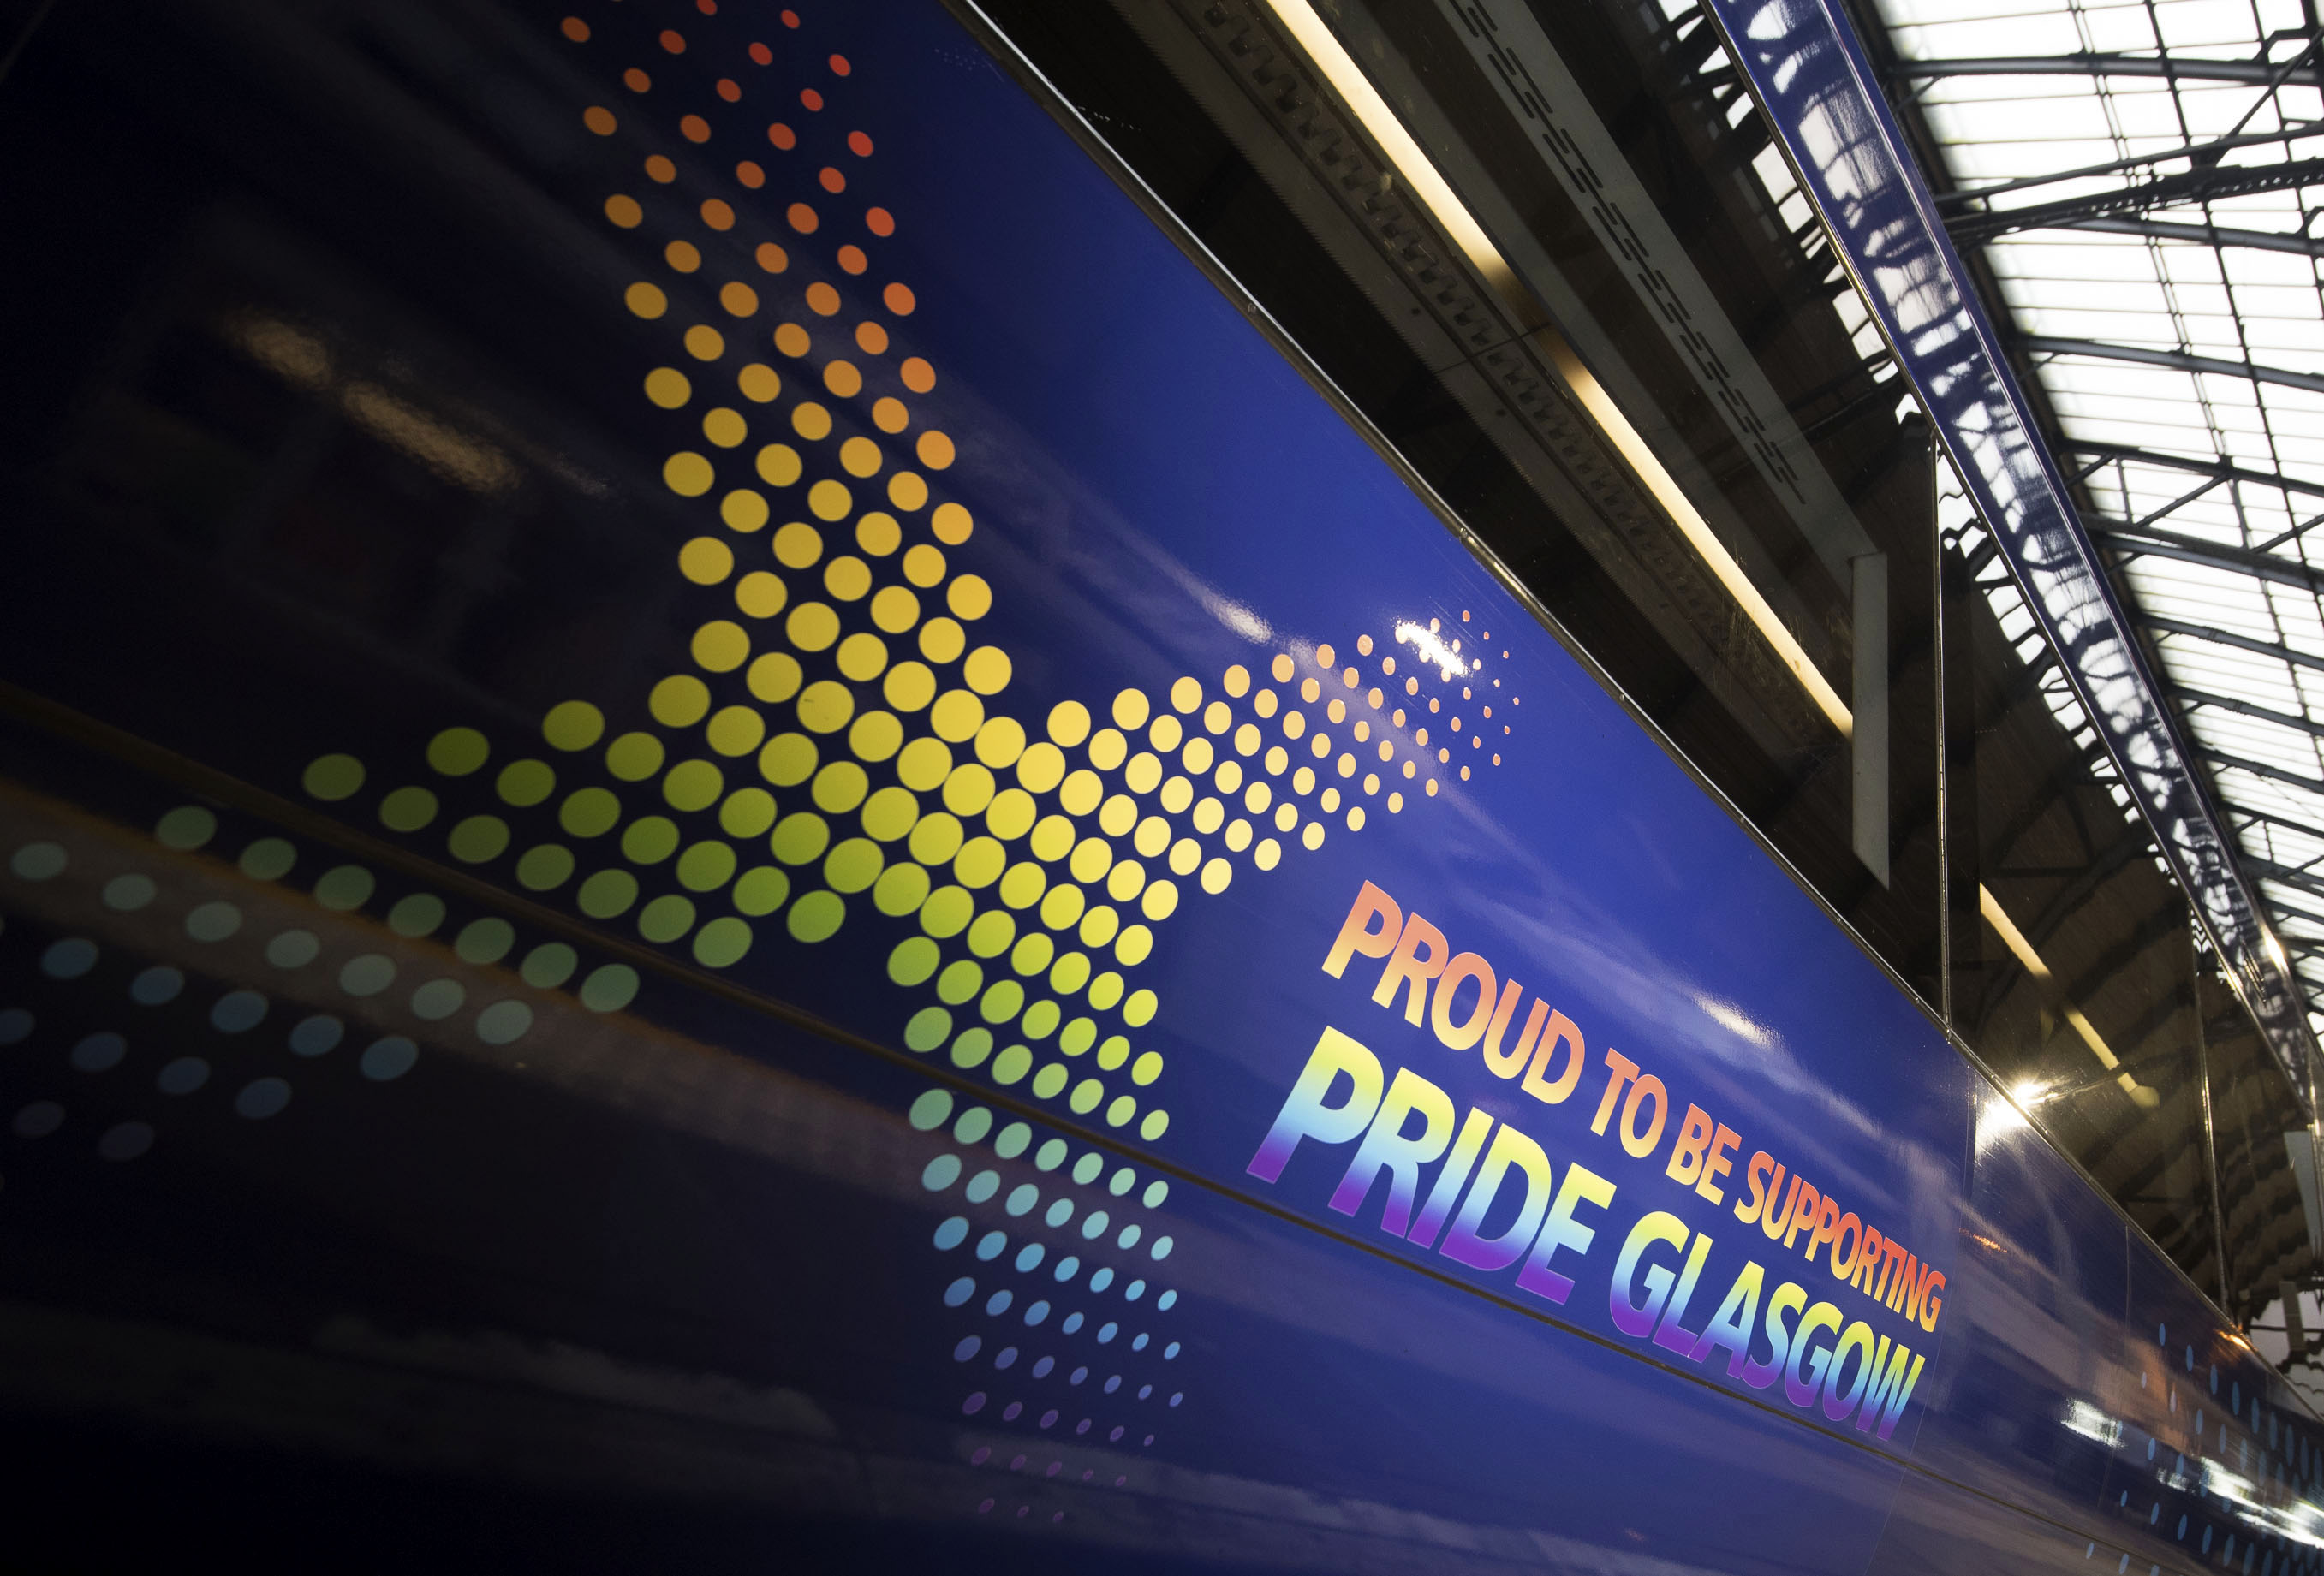 11/08/17 - 17081101 - SCOTRAIL  QUEEN STREET STATION - GLASGOW  Scotrail pride trains